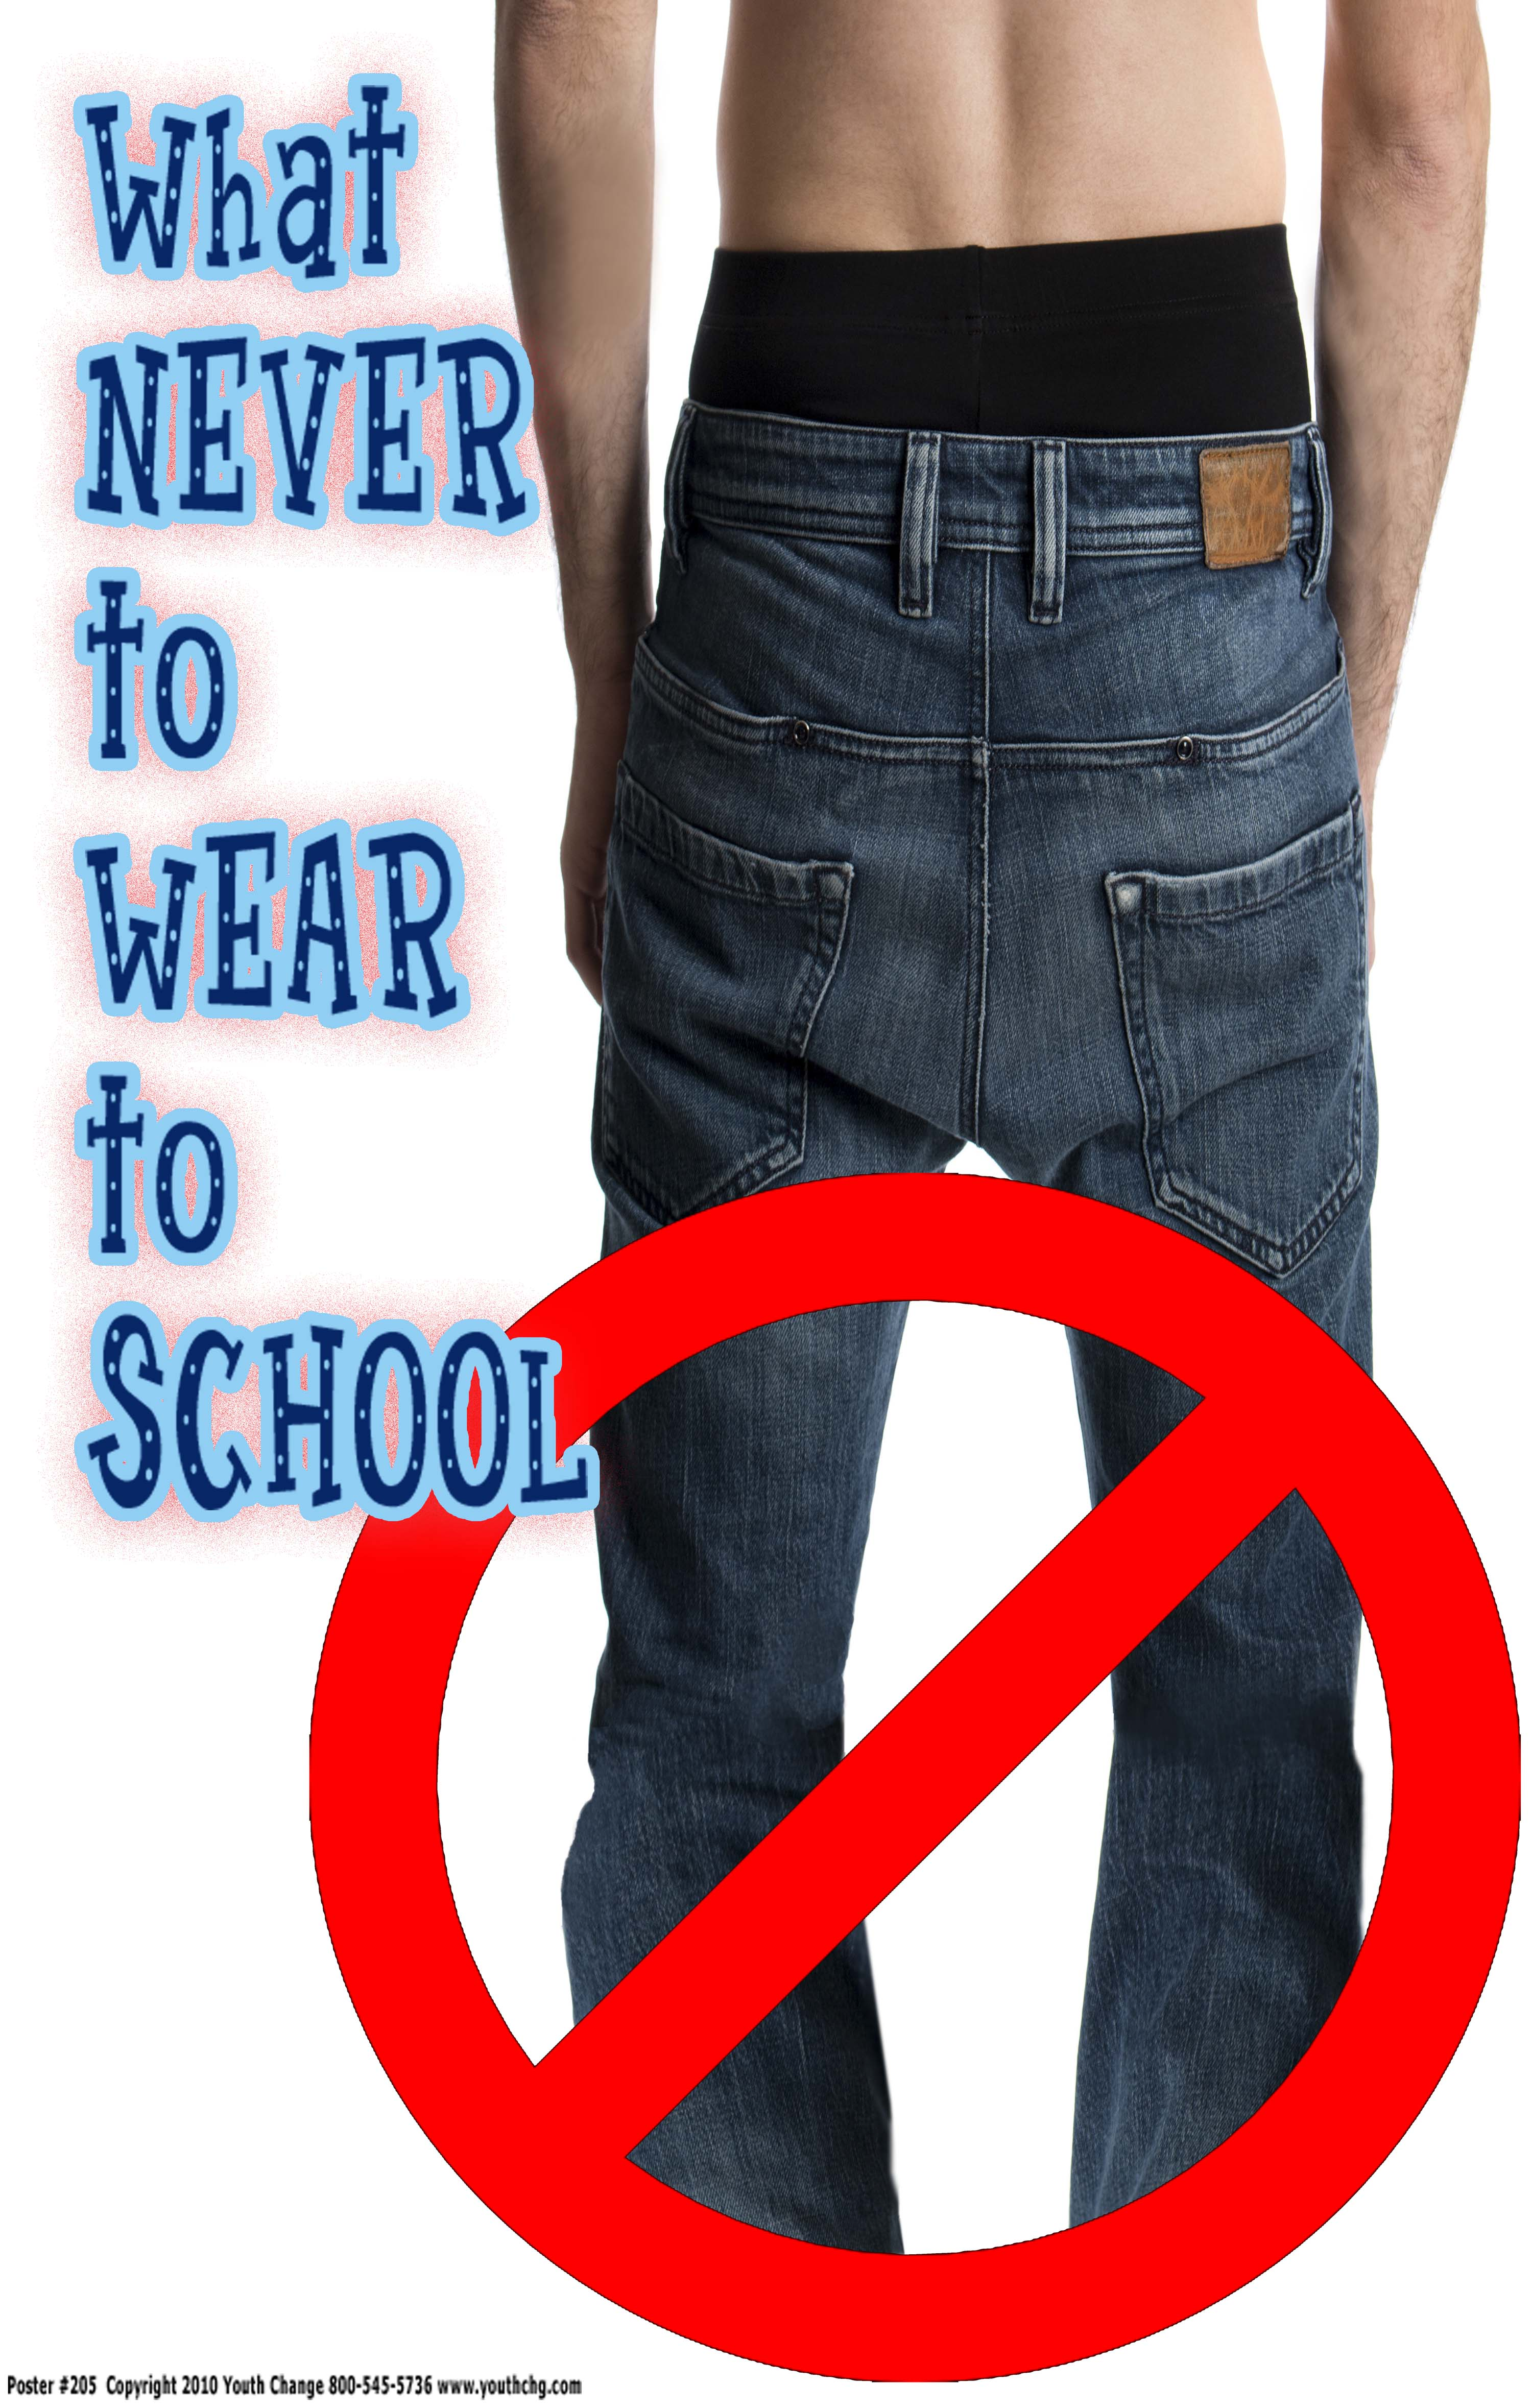 sagging pants rules poster